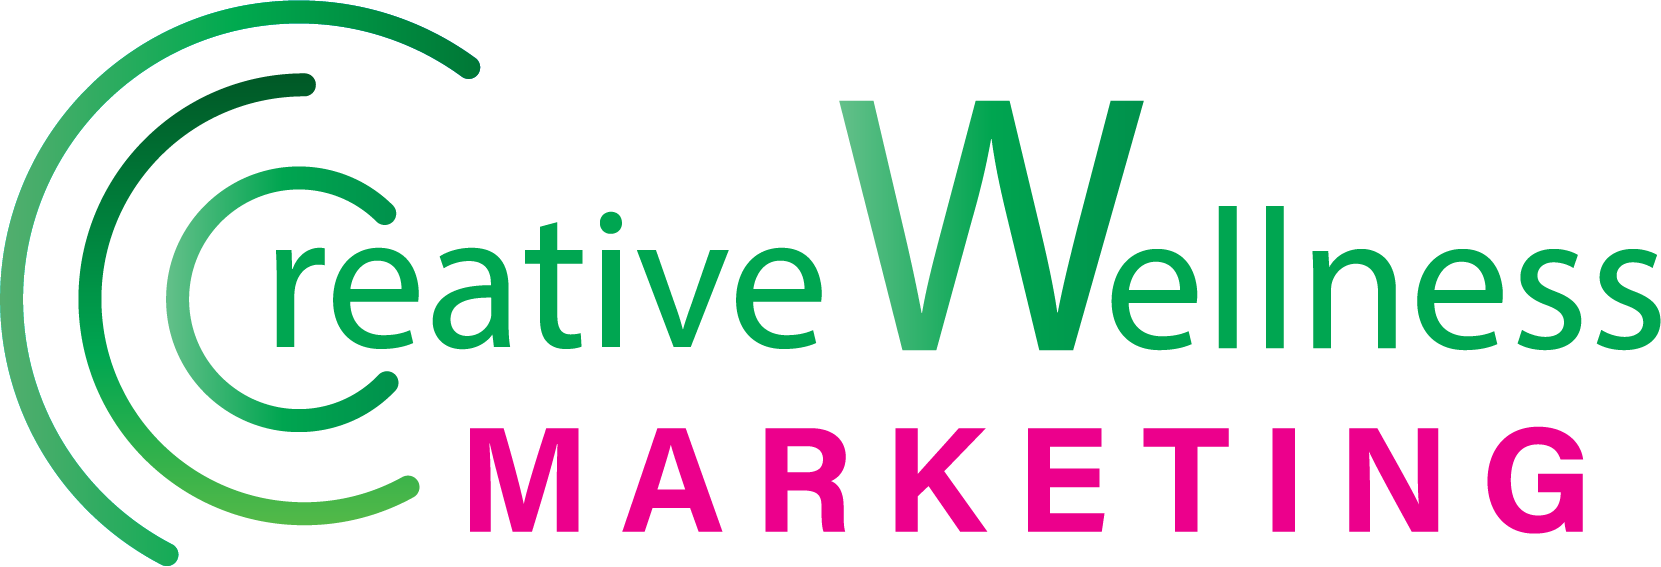 Digital Marketing Agency | Creative Wellness Internet Marketing Agency